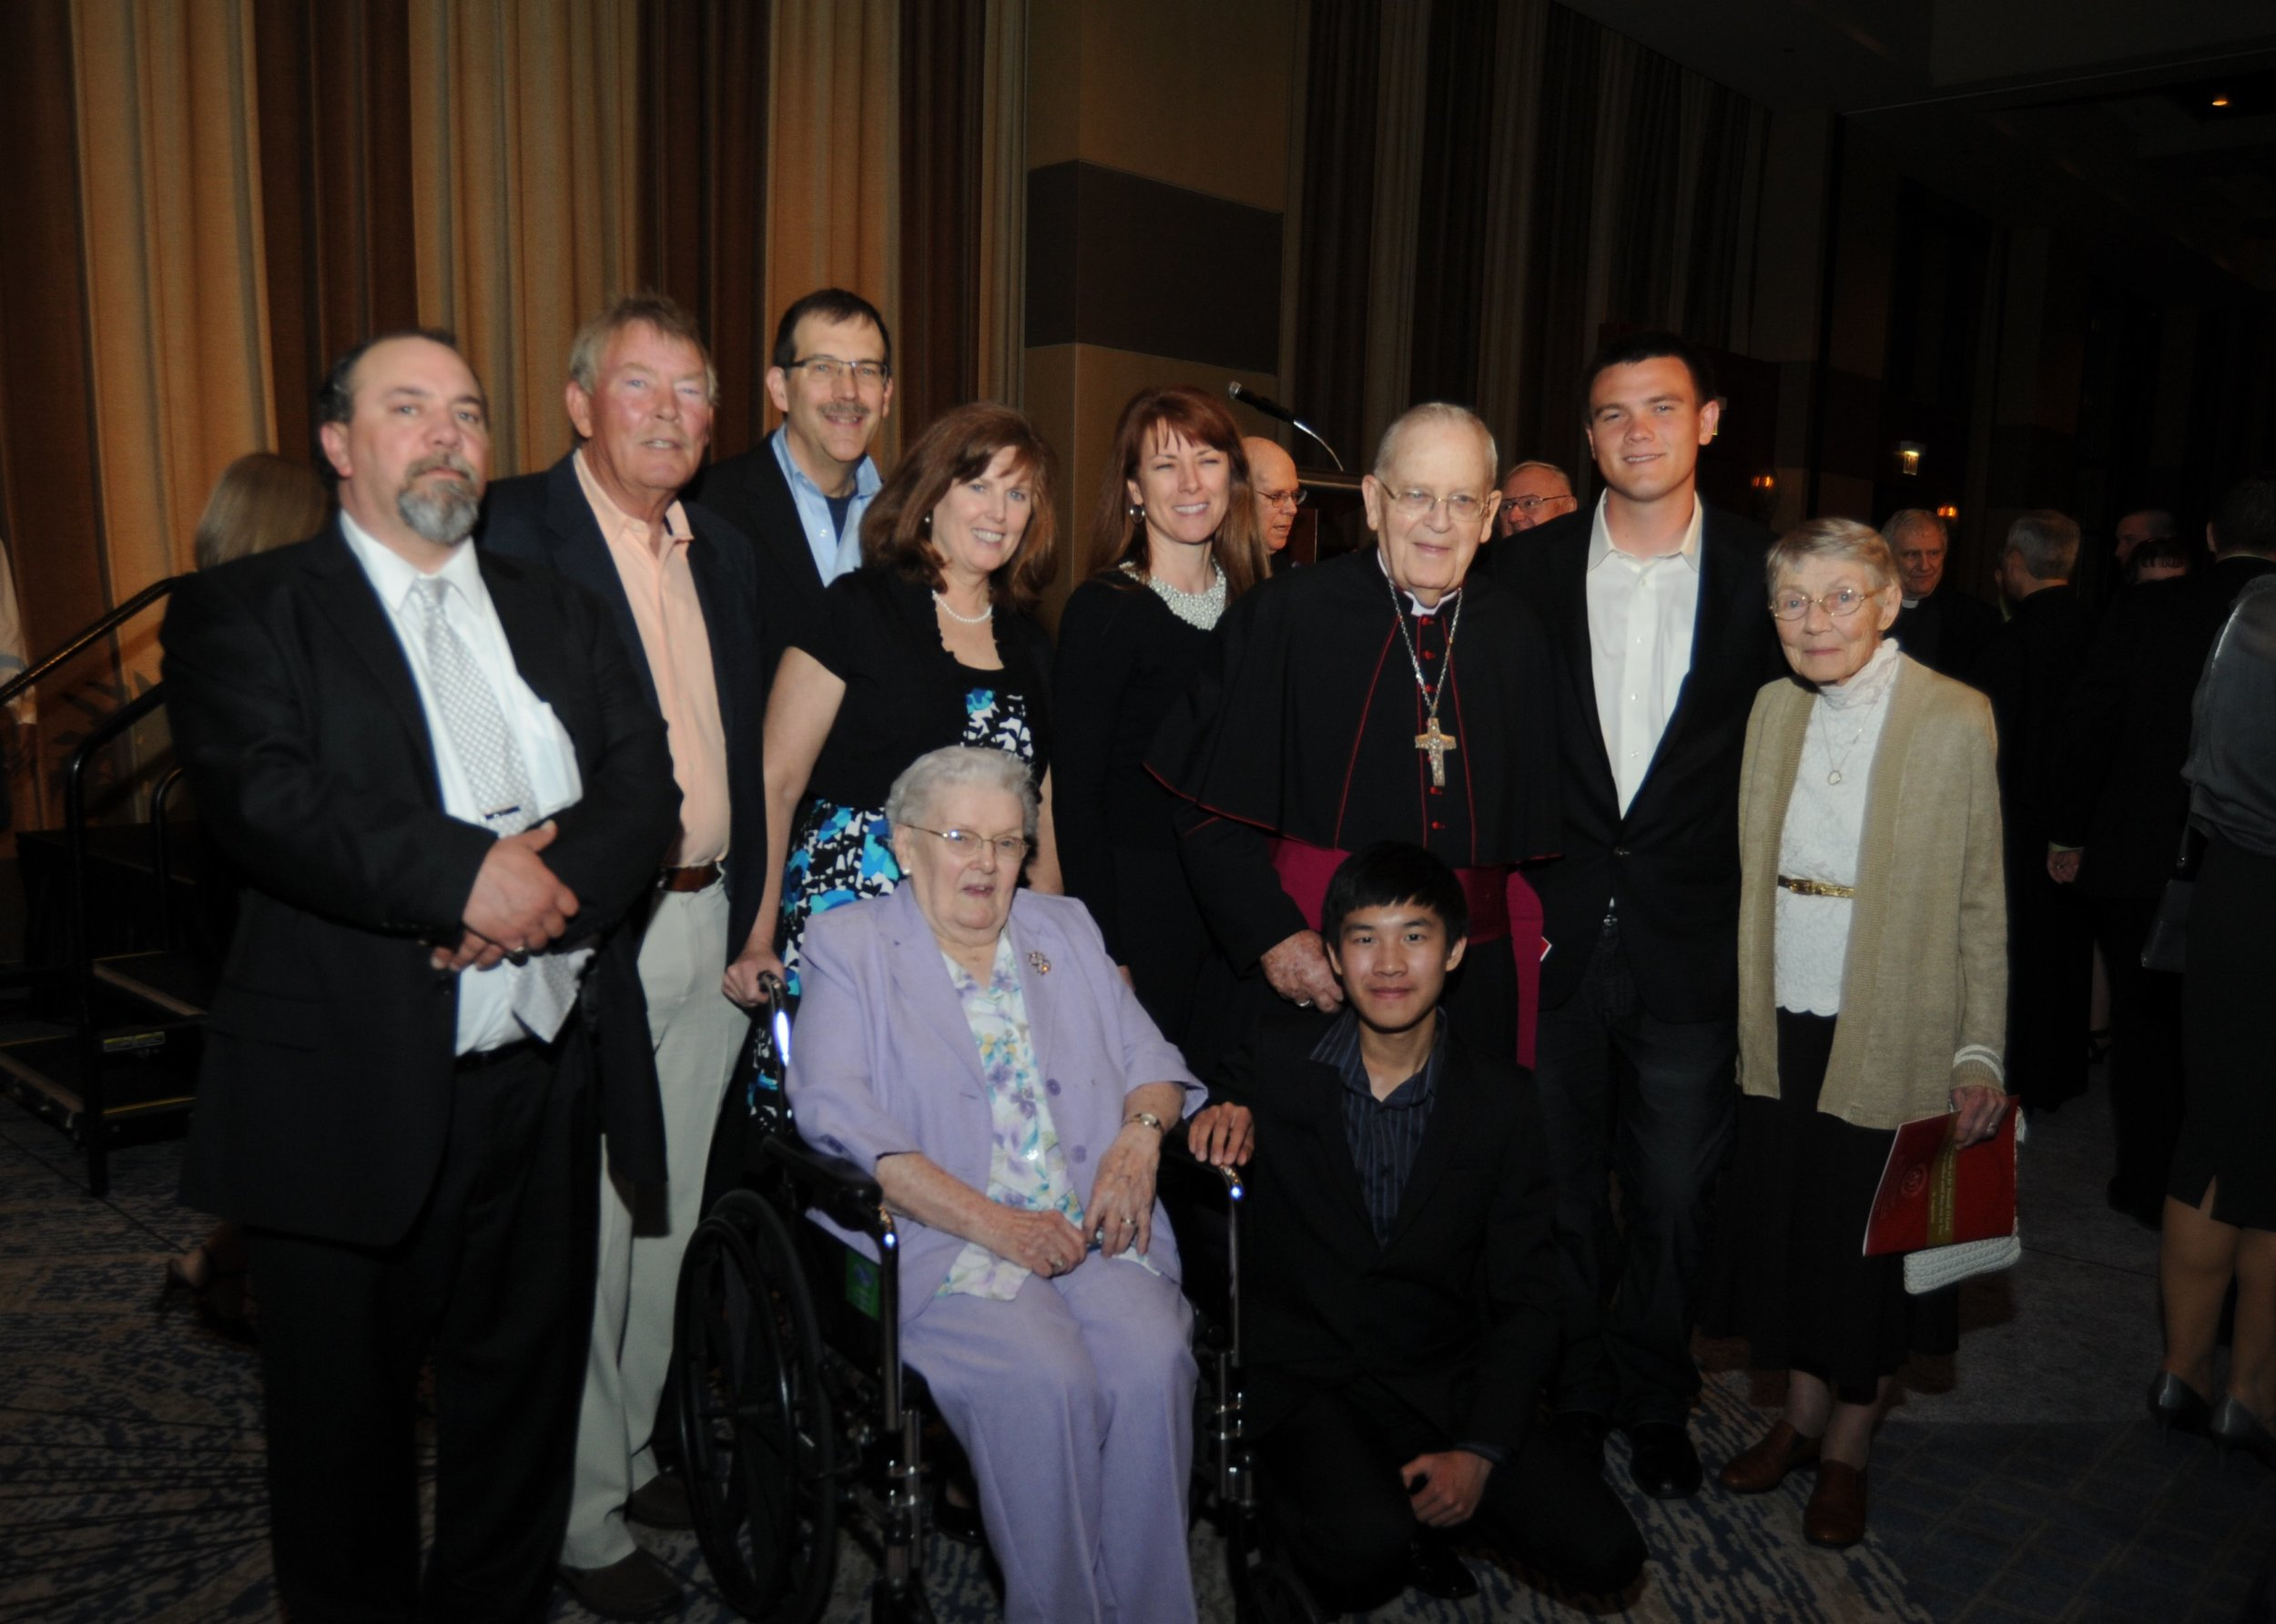 Bishop McNabb with his family and friends at the 2013 Augustinian Gala